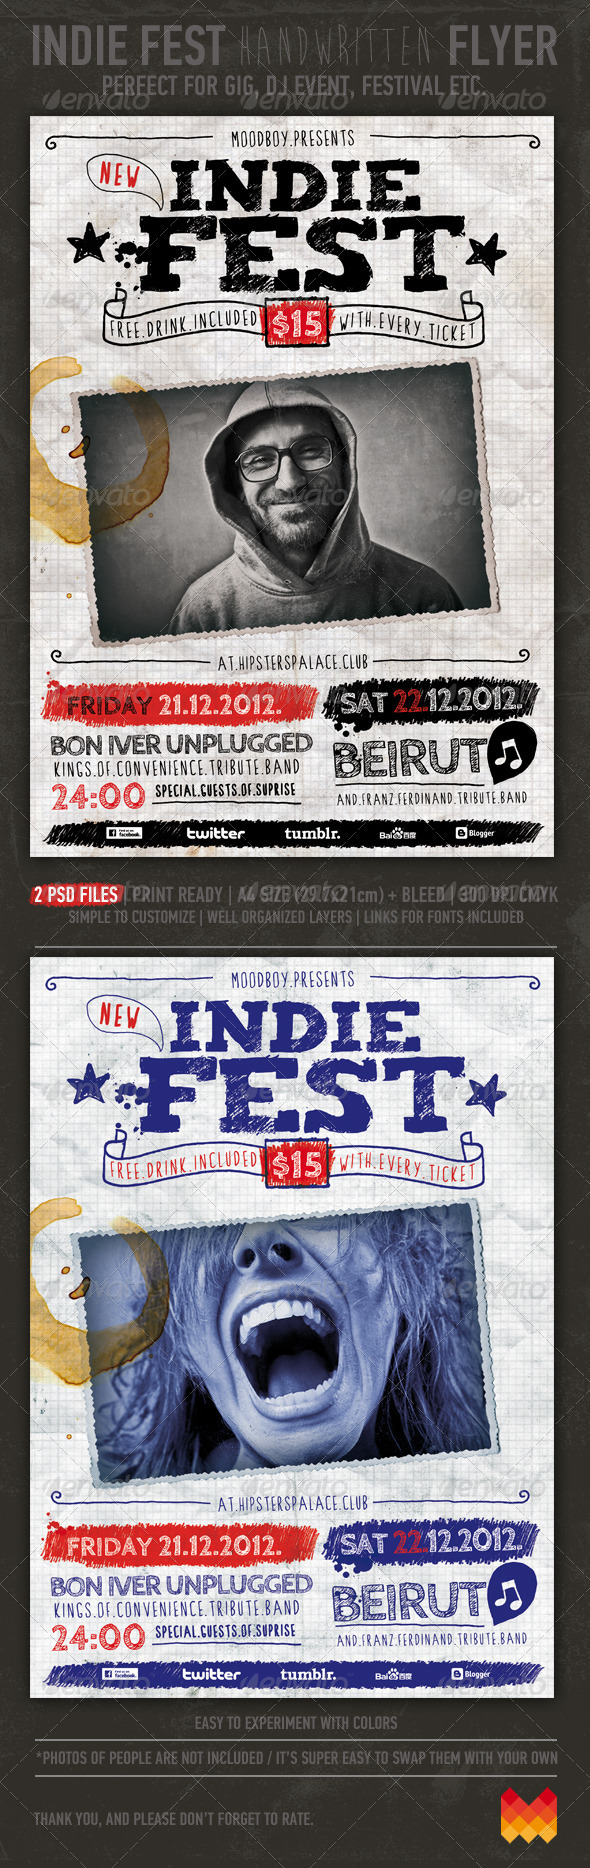 Indie Fest Handwritten Flyer/Poster - Events Flyers